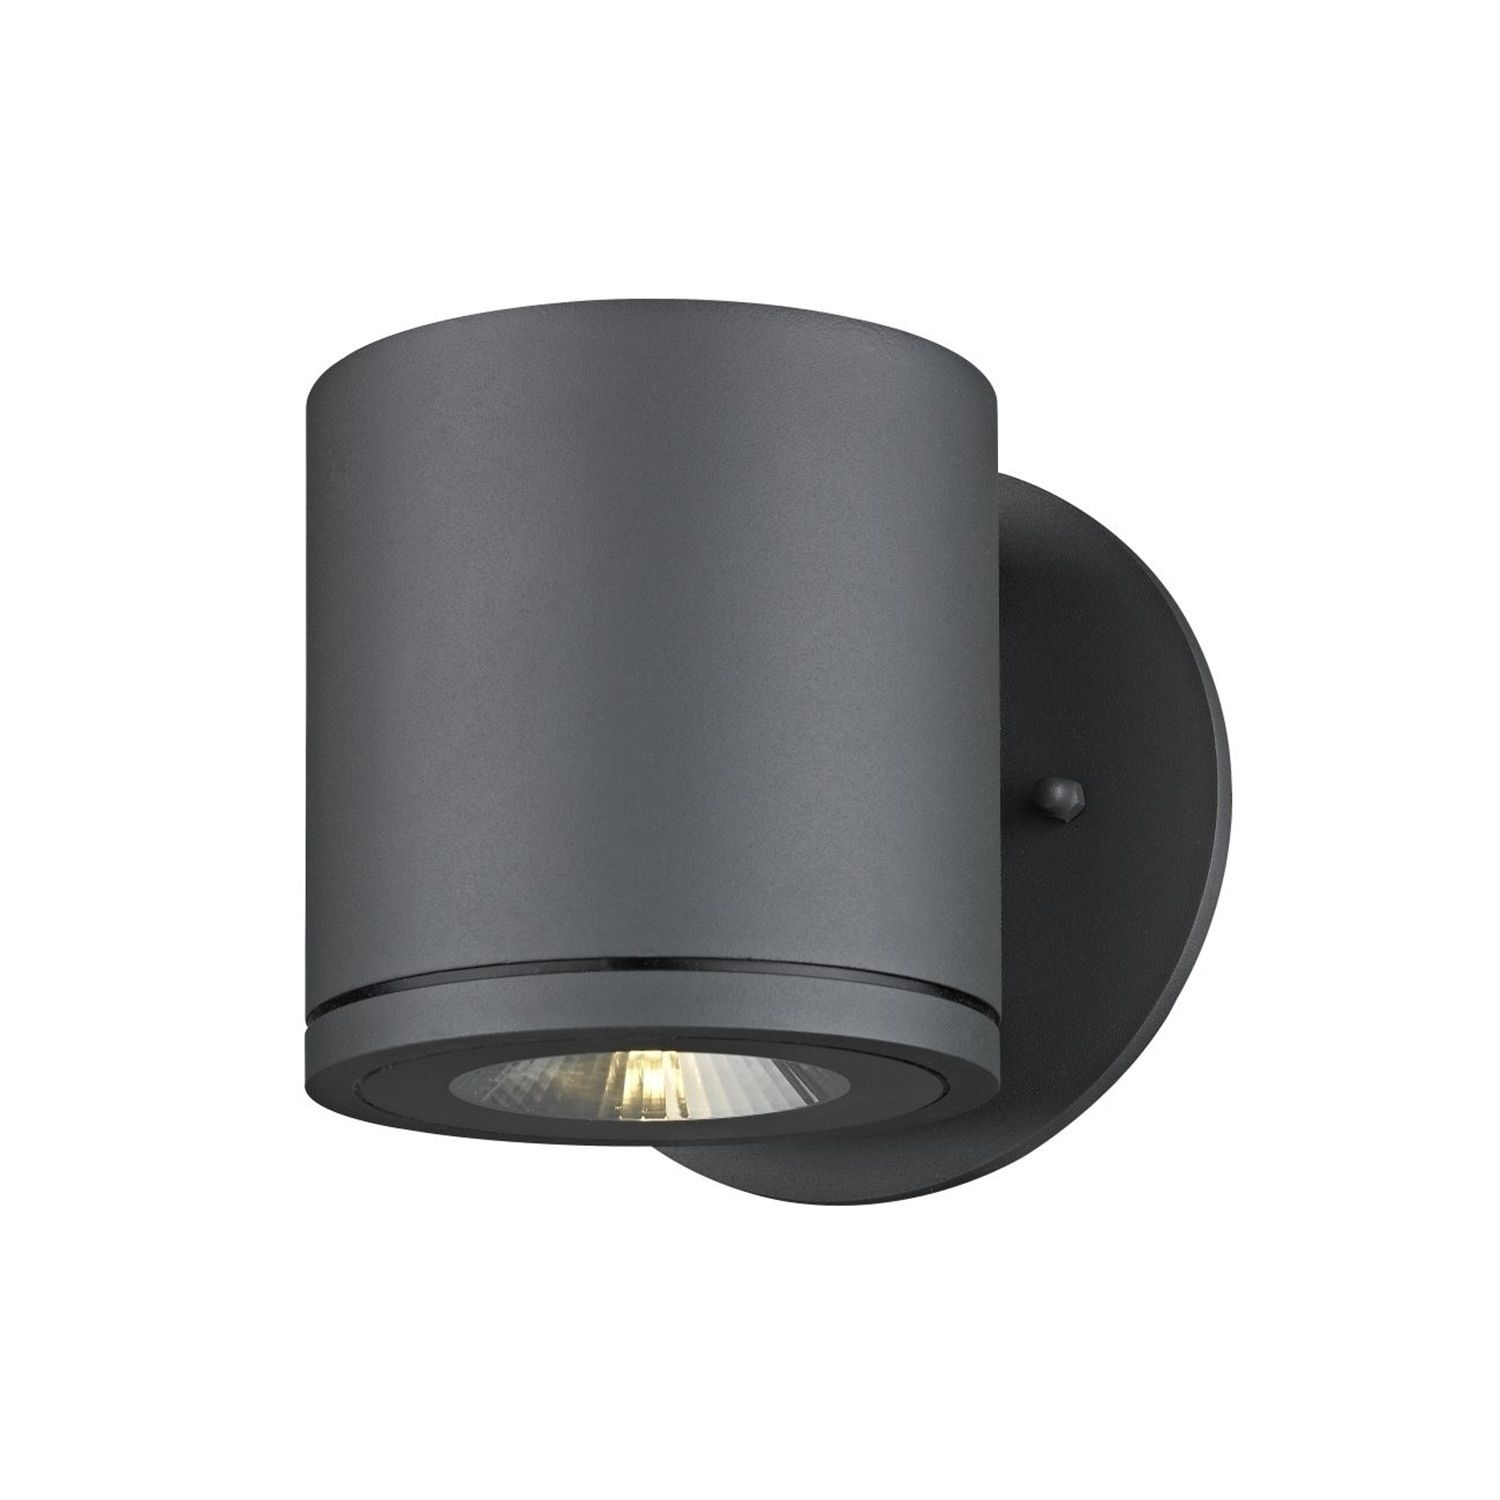 Lamp Slv Slv Lighting Big Rox Led Anthracite 7 5 Wall Lamp Anthracite